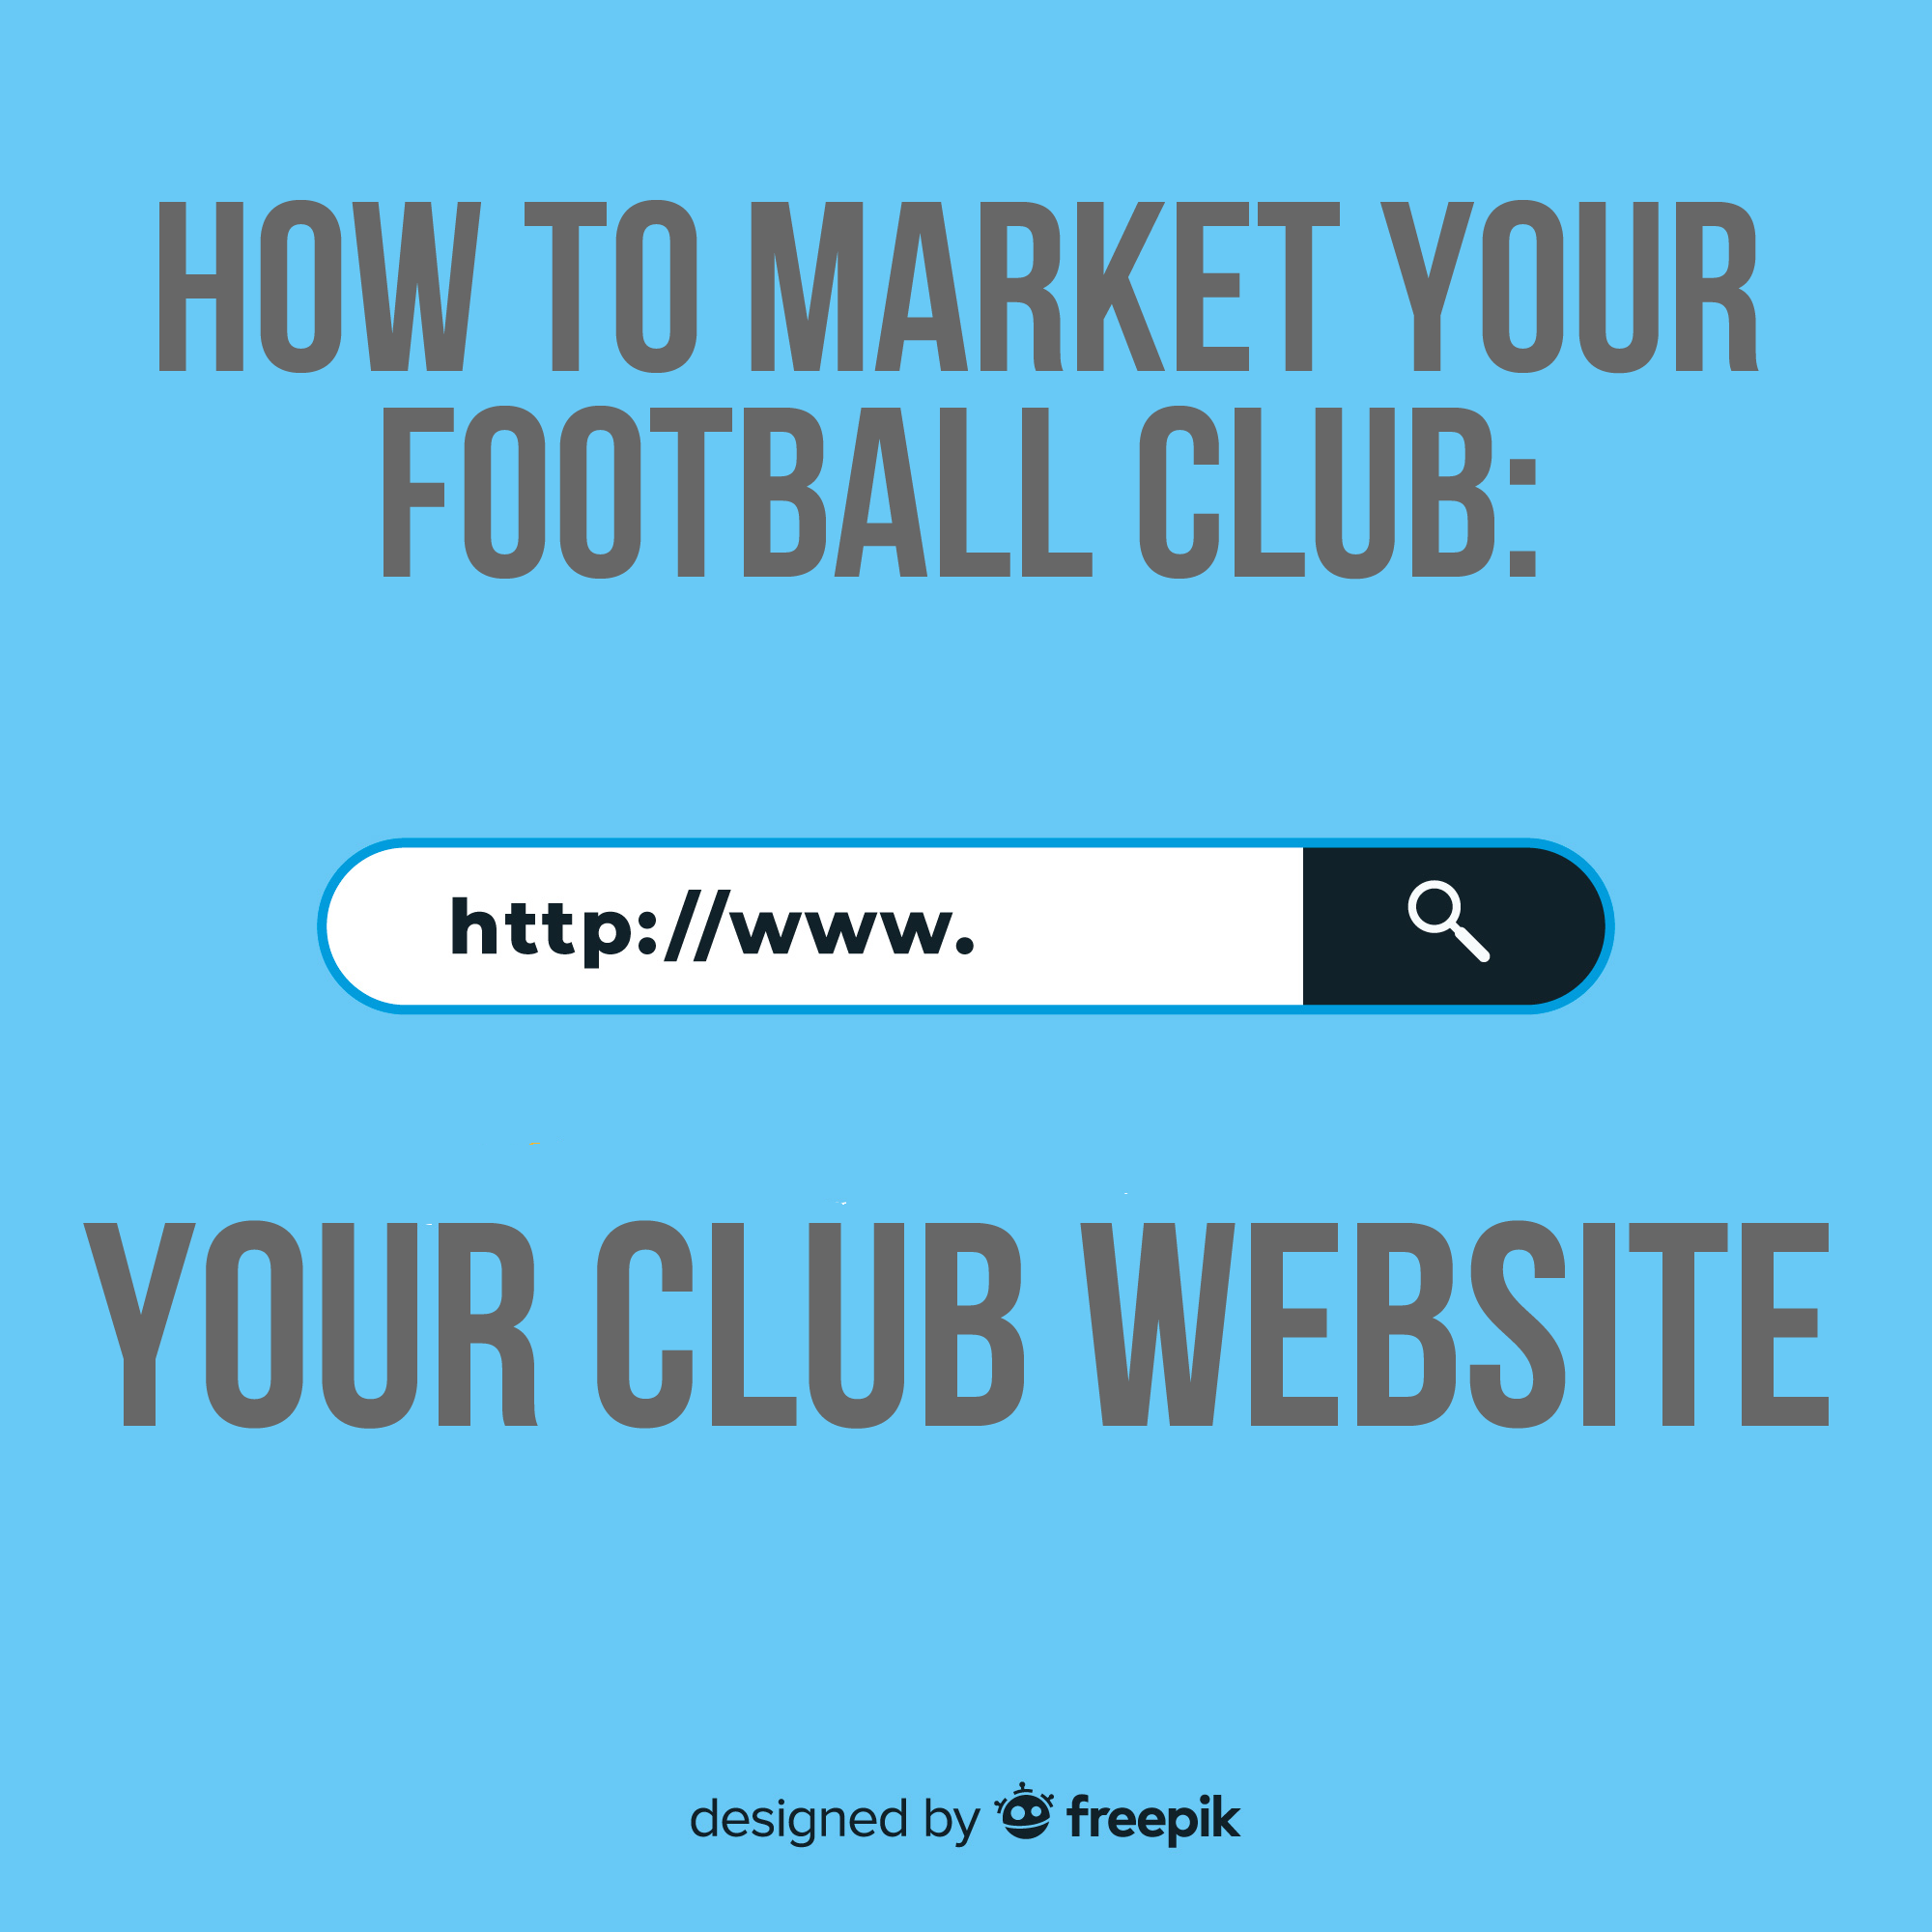 How to market your football club: your club website